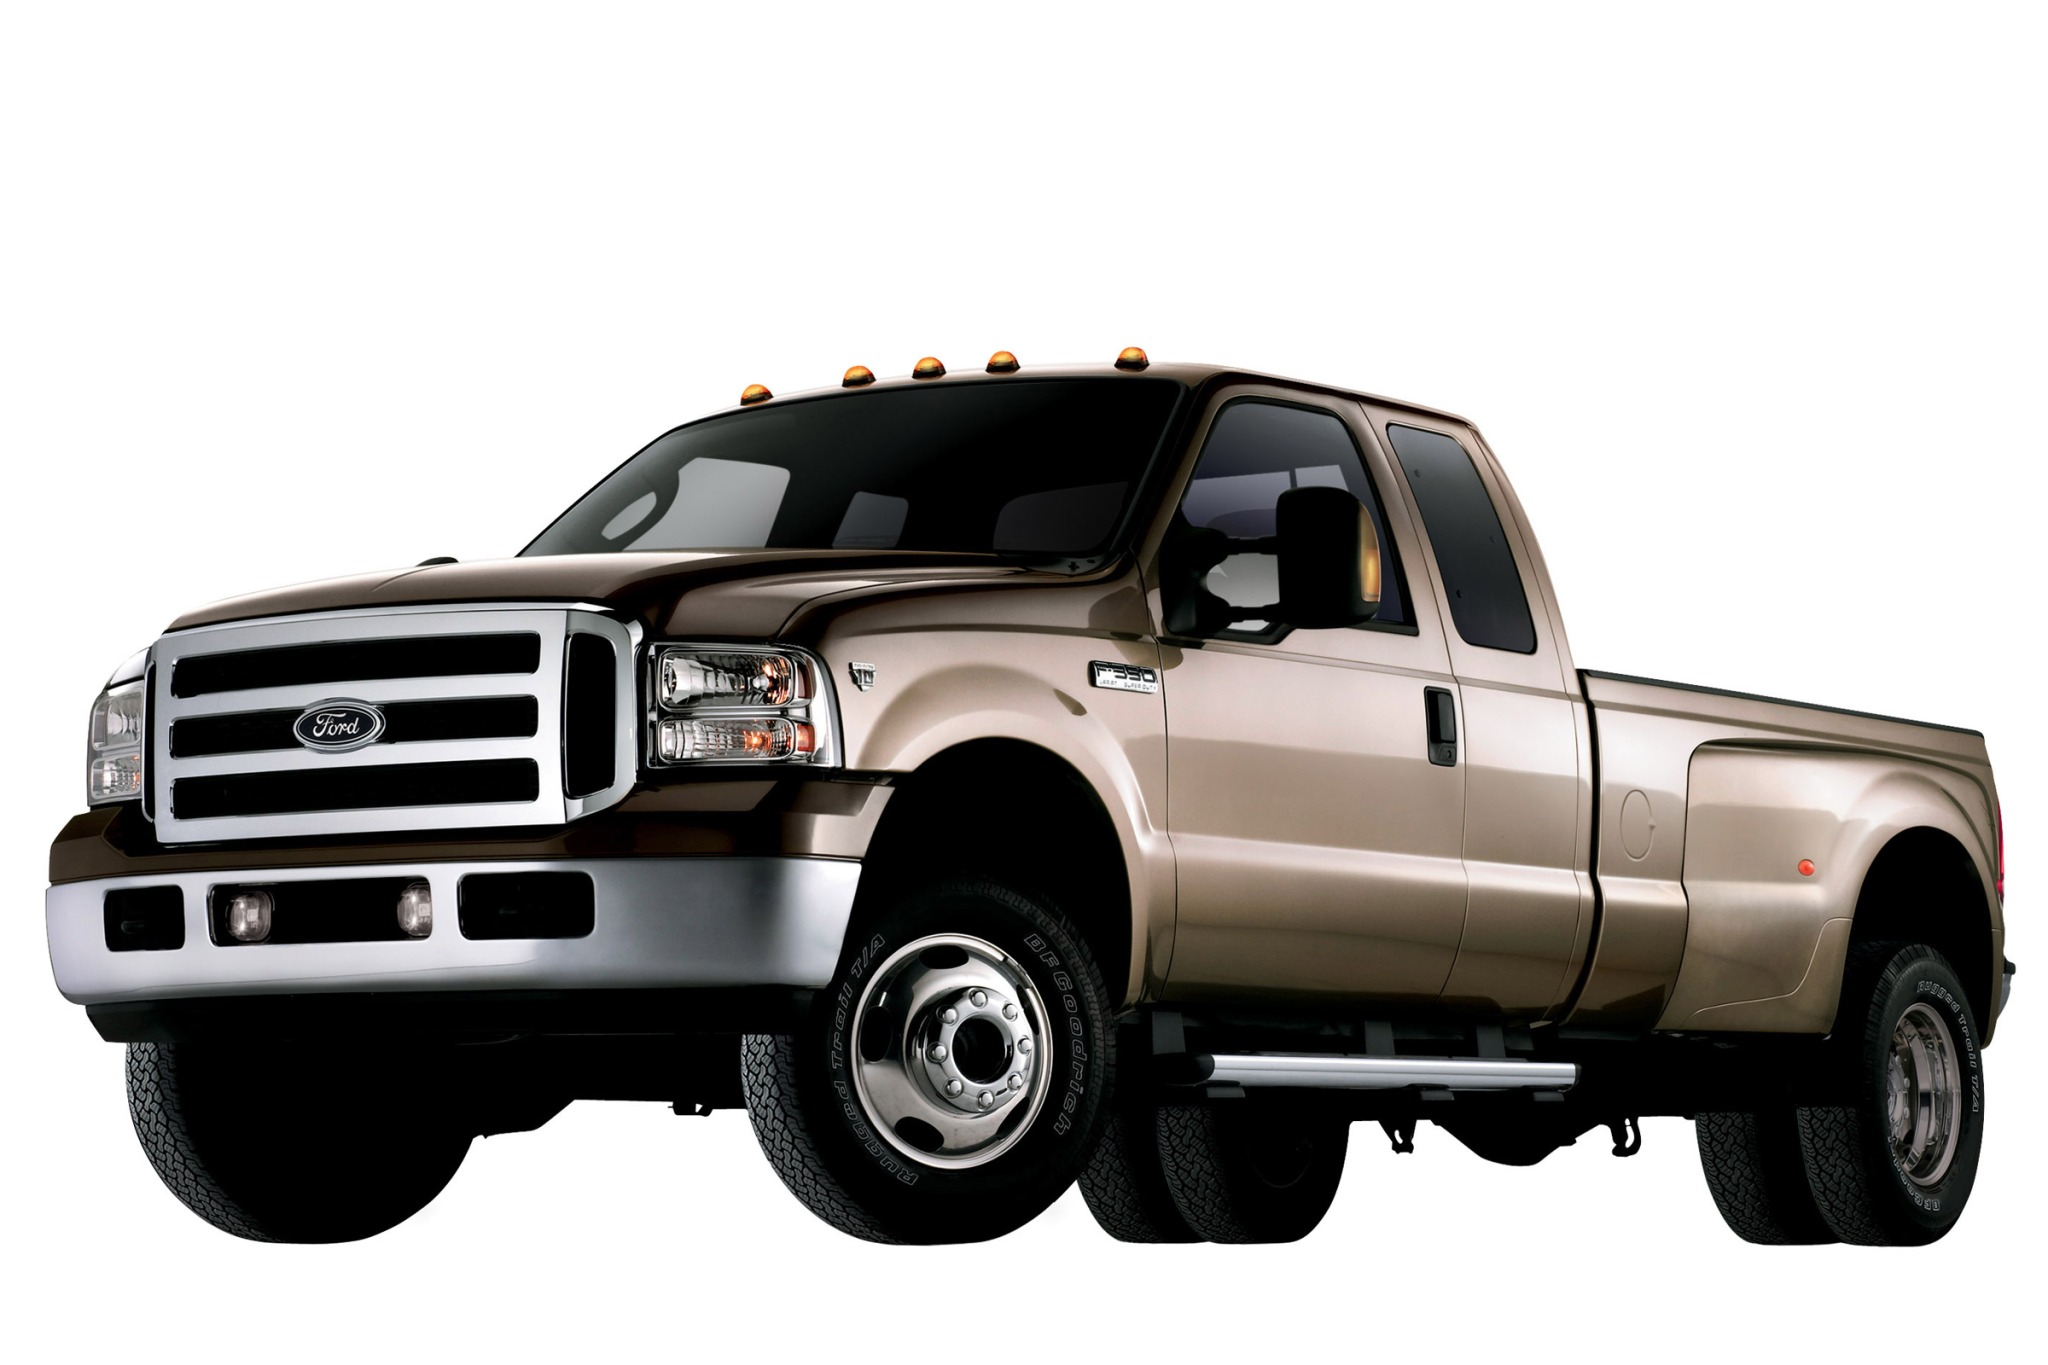 2007 Ford F-350 Super Dut exterior #8